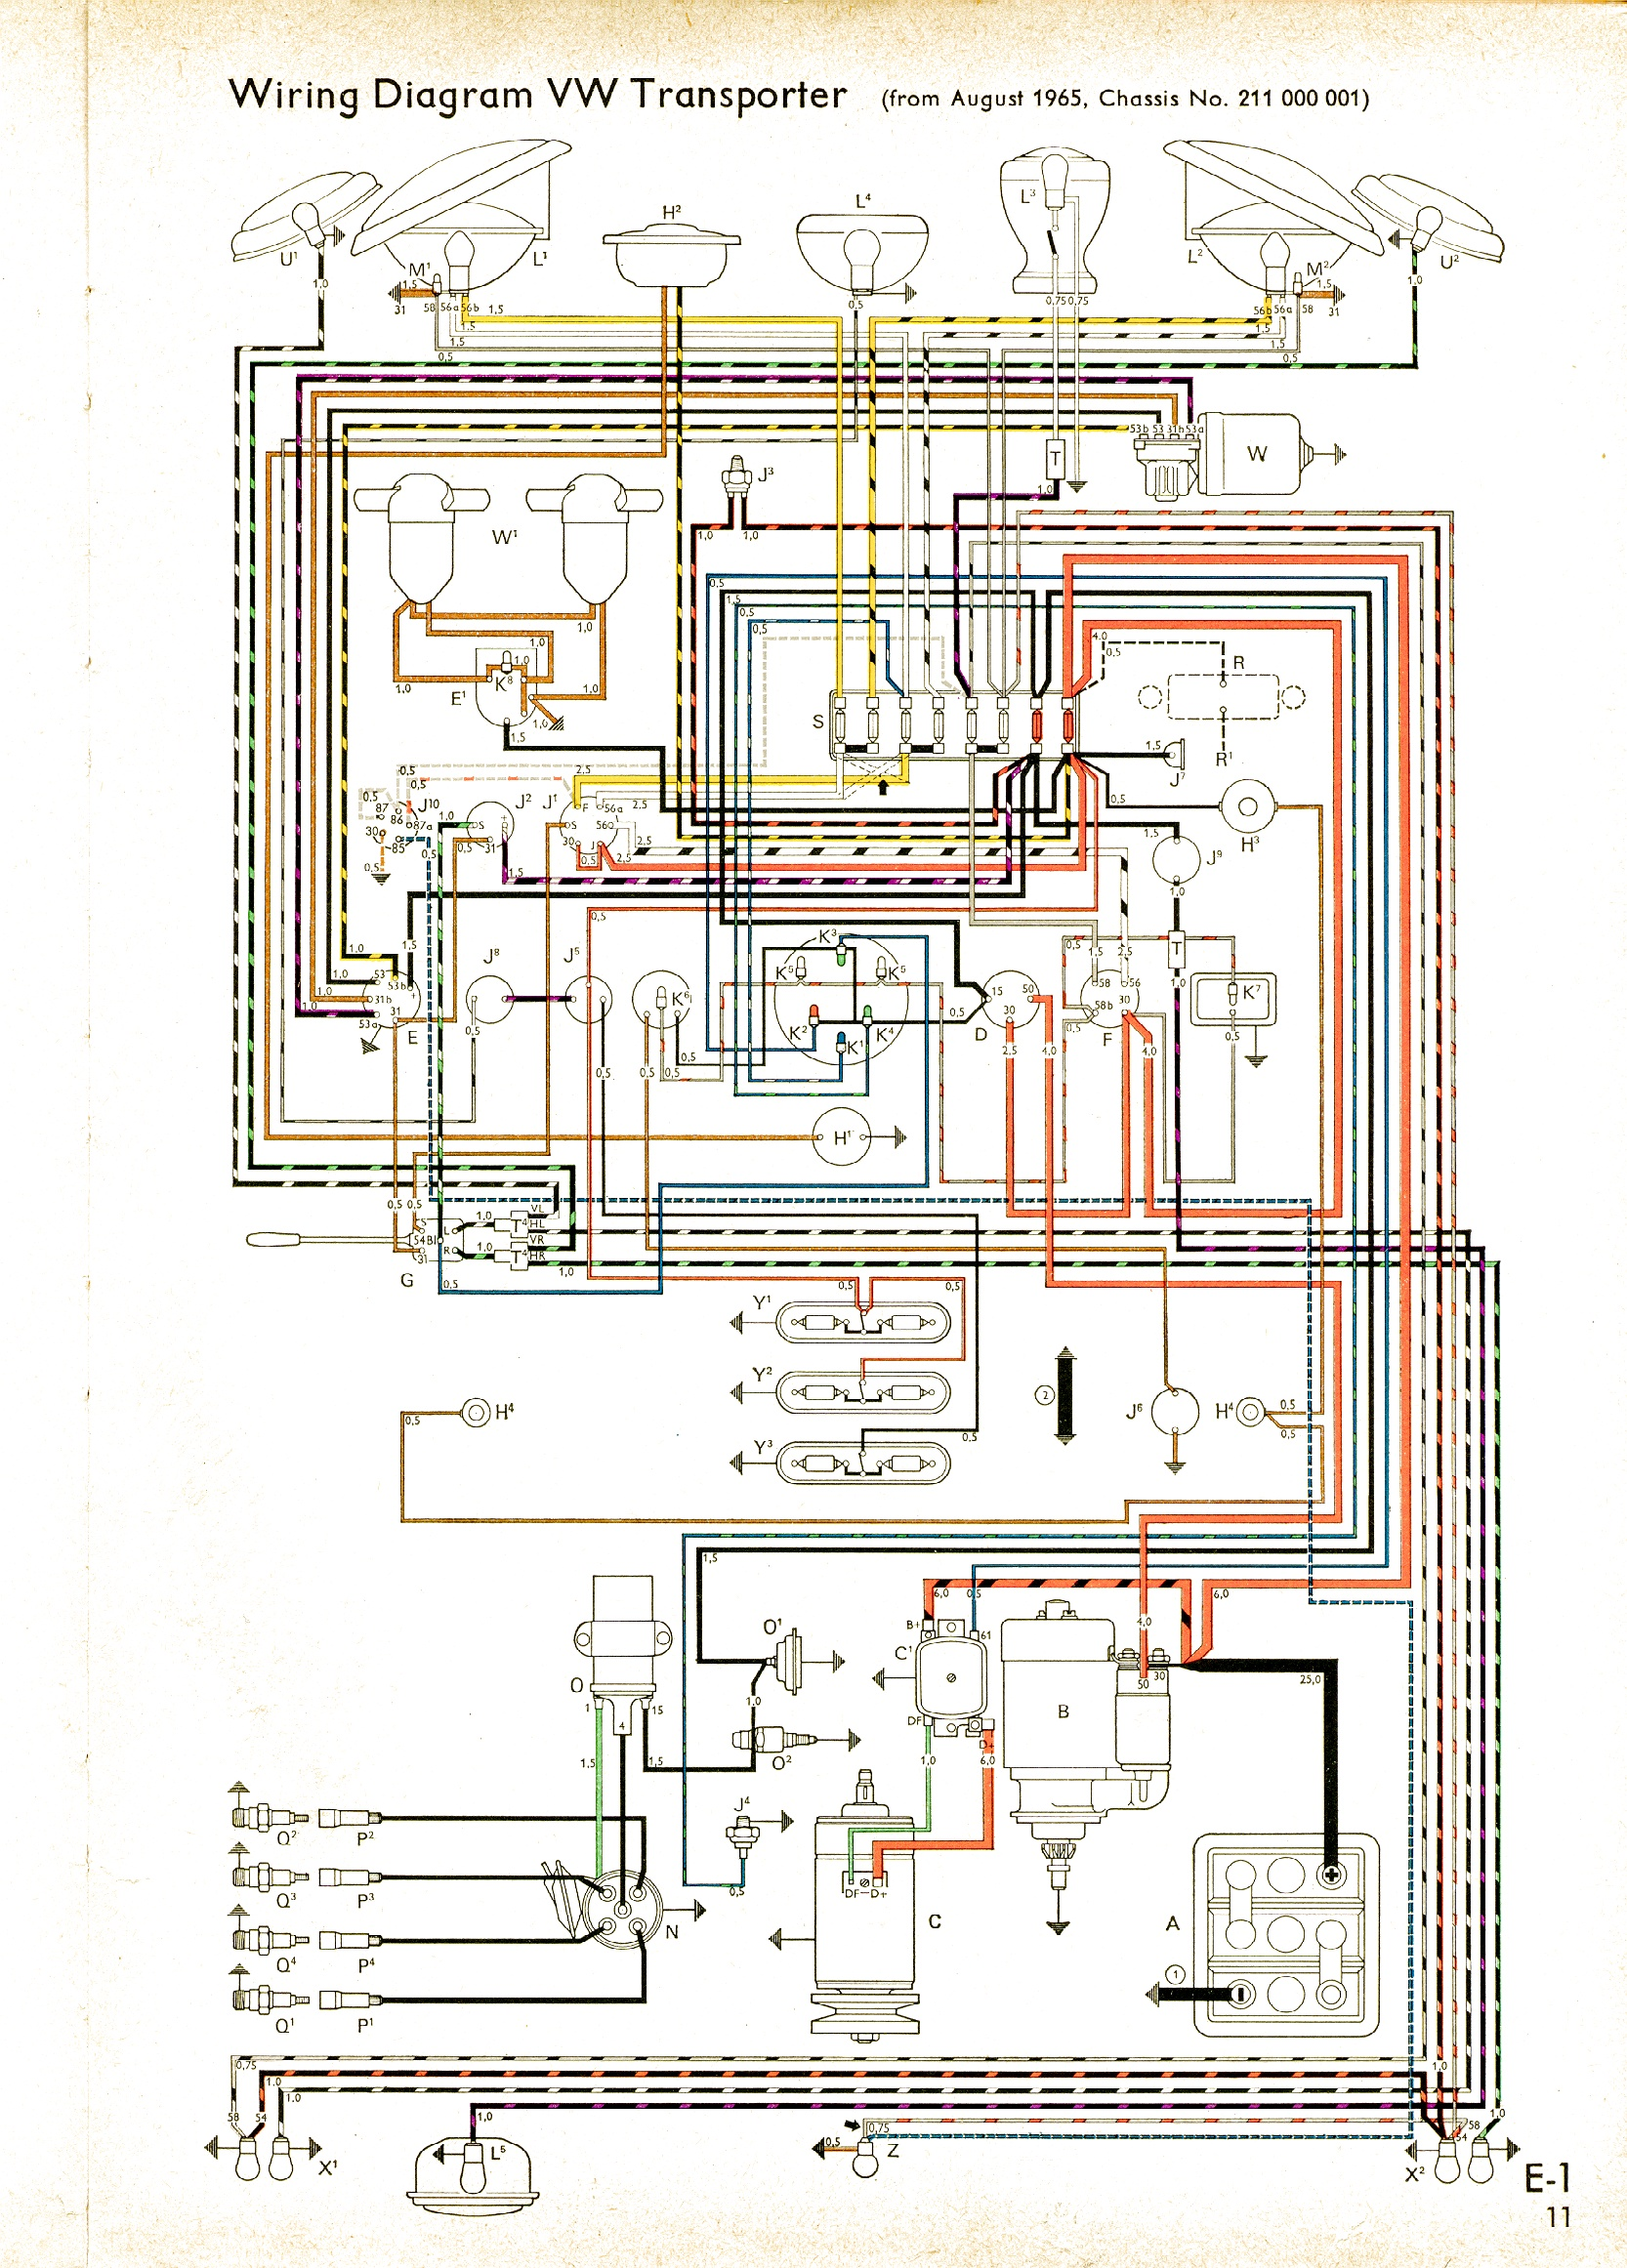 1967 vw beetle wiring diagram RIDAwNe 1967 vw bug wiring diagram on 1967 download wirning diagrams 1970 vw bug wiring diagram at pacquiaovsvargaslive.co